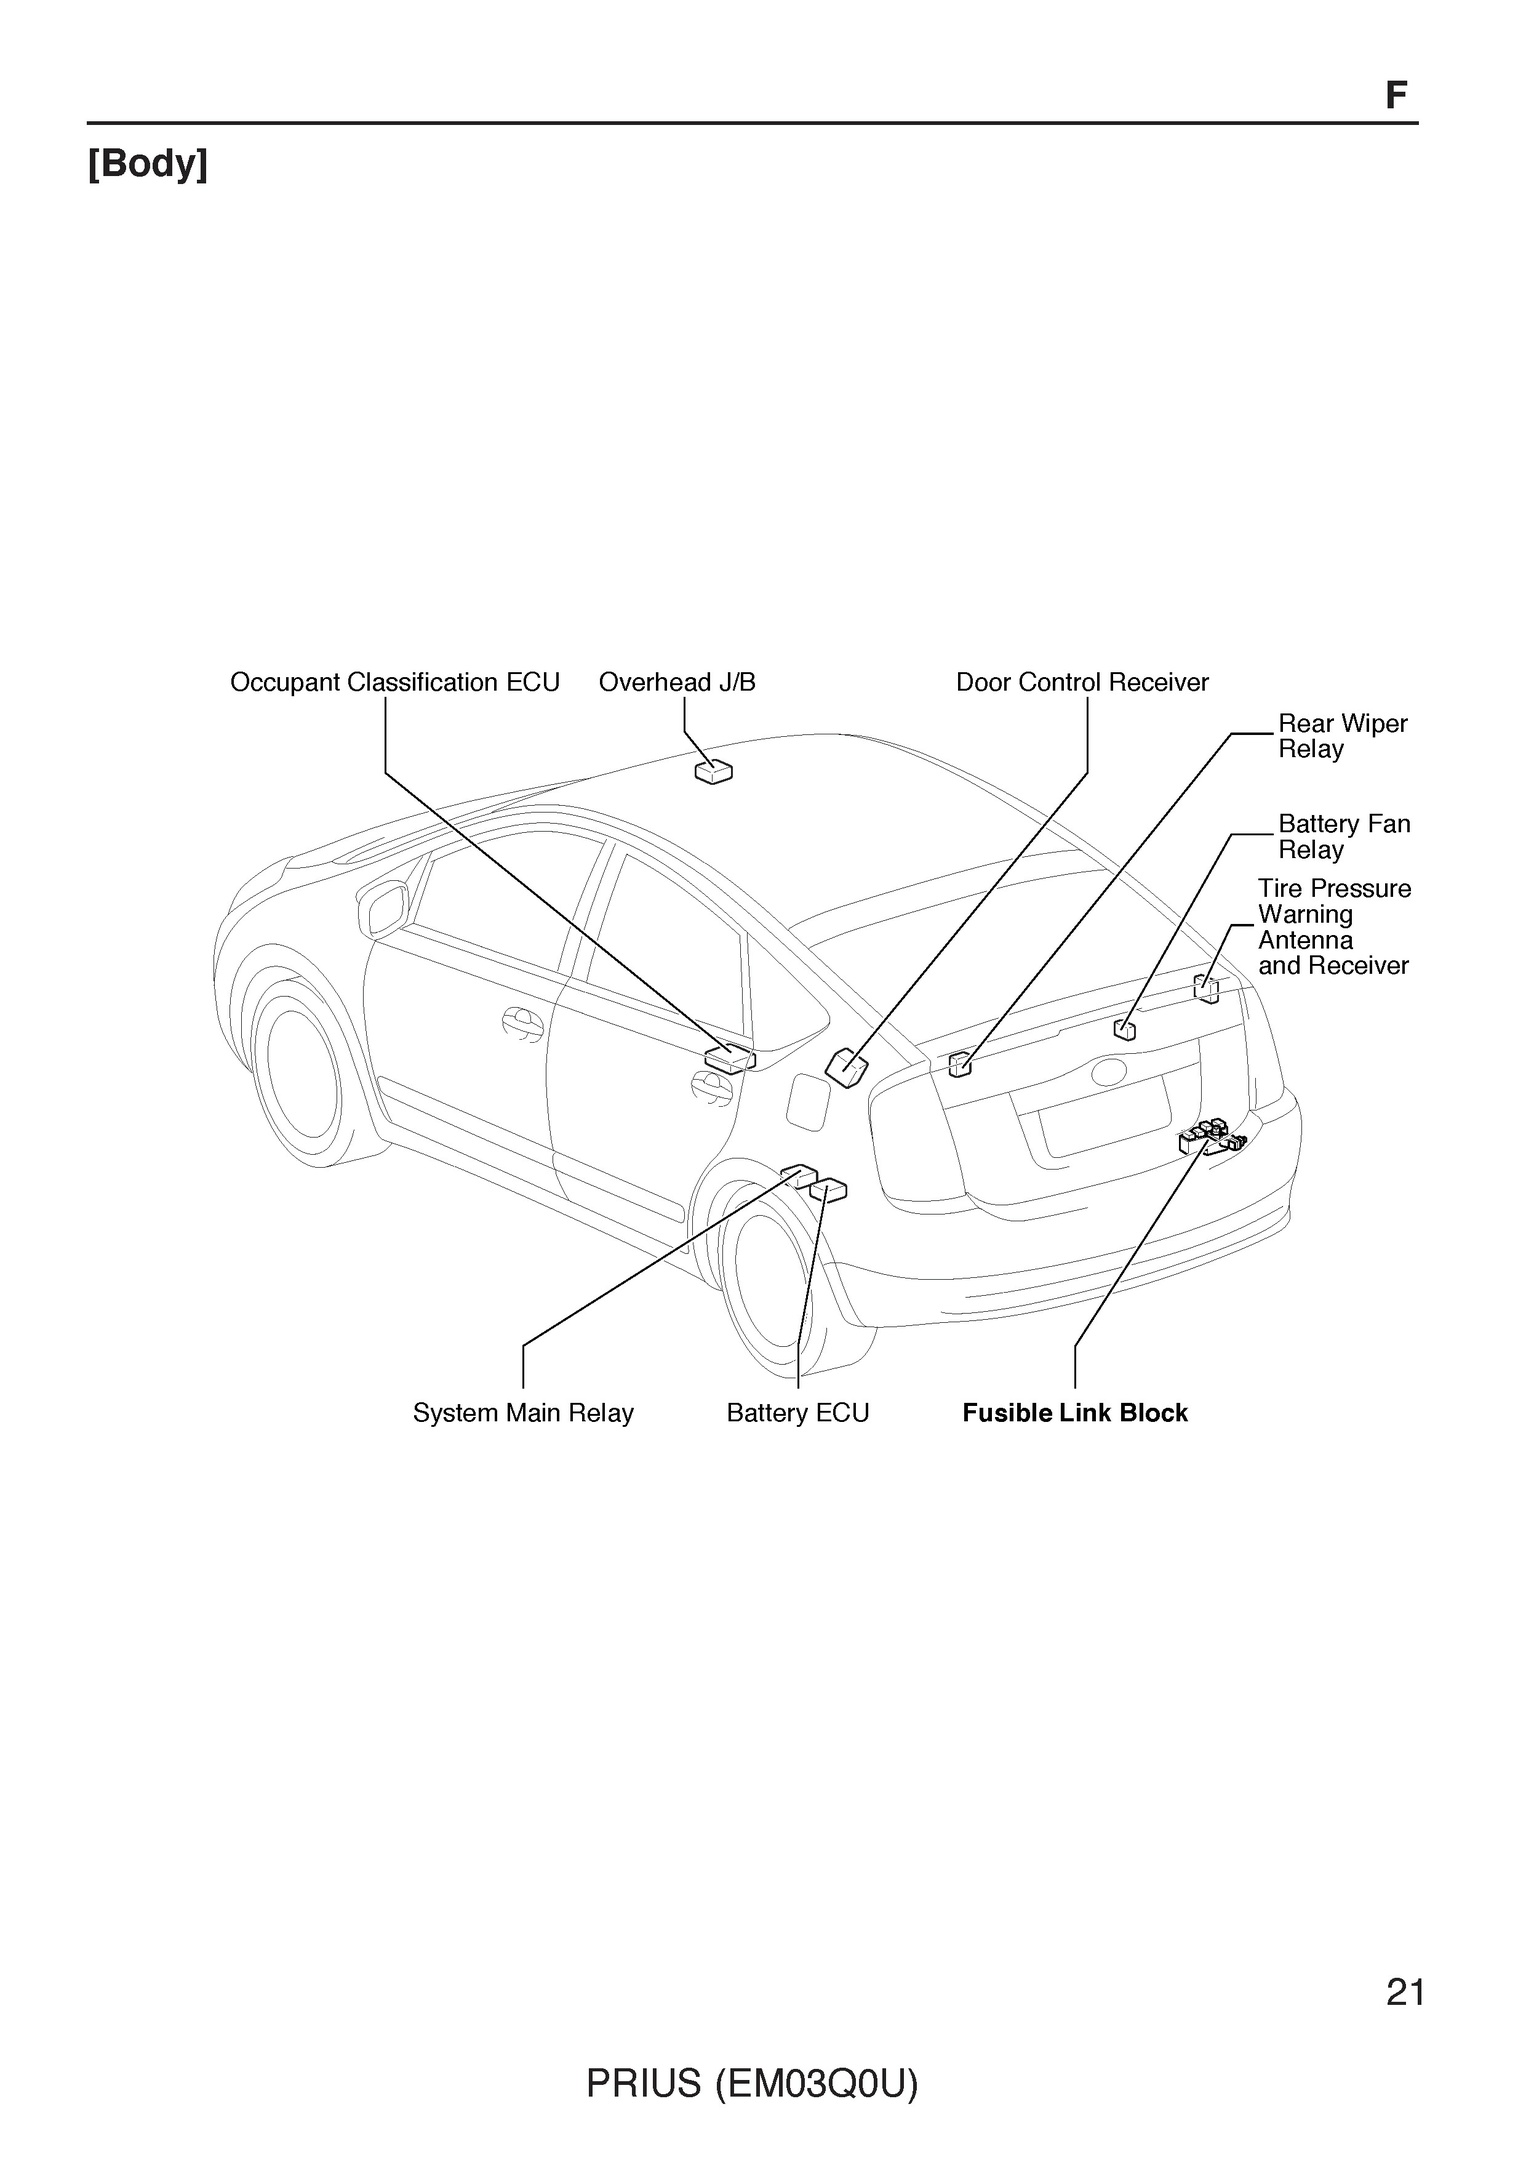 2006 prius wiring diagram data diagram schematic 2006 toyota prius electrical wiring diagram wiring diagrams konsult 2006 prius wiring diagram